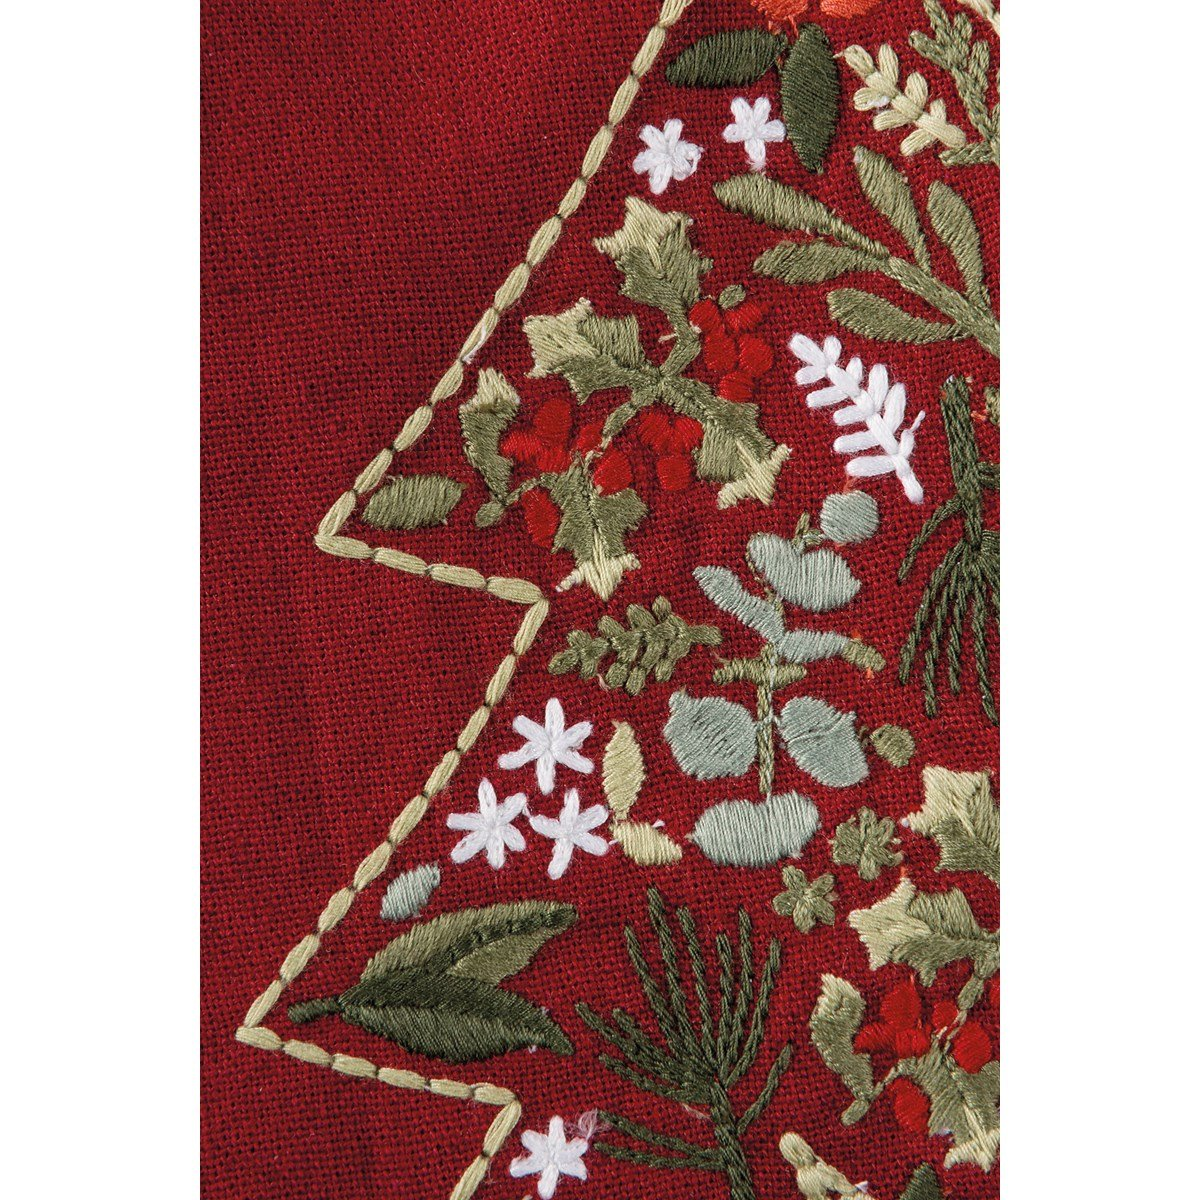 "Dish Towel - Home For The Holidays - 20"" x 26"" - Cotton, Linen"